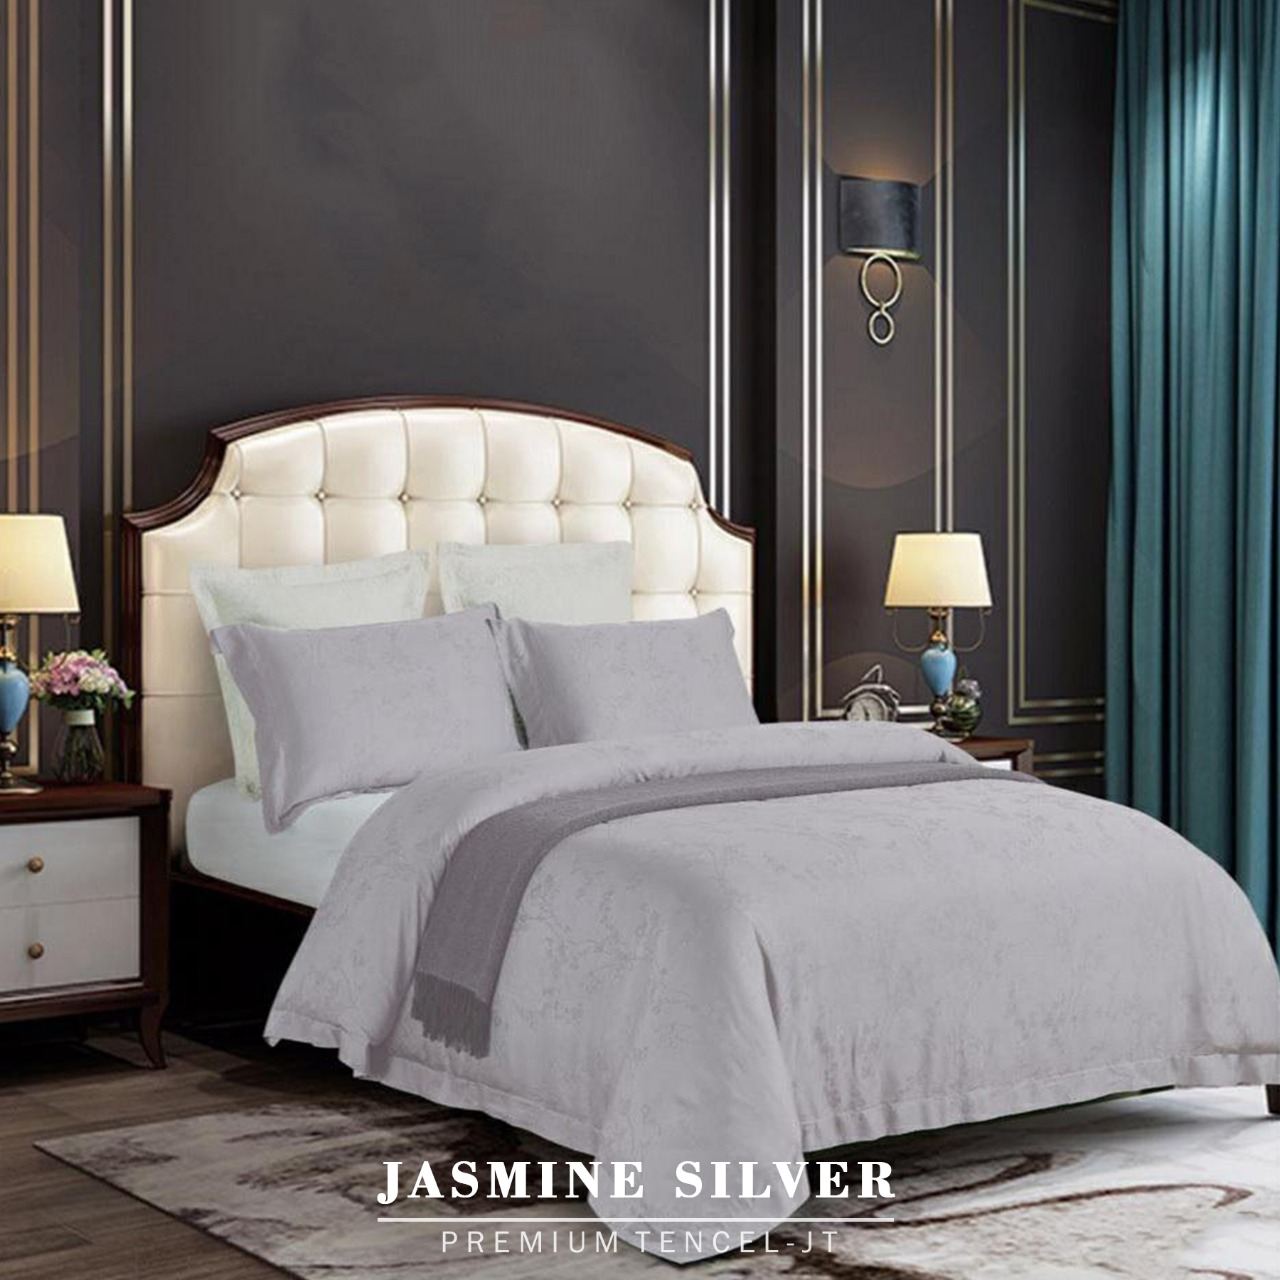 Jasmine - Premium Tencel Bedding Set